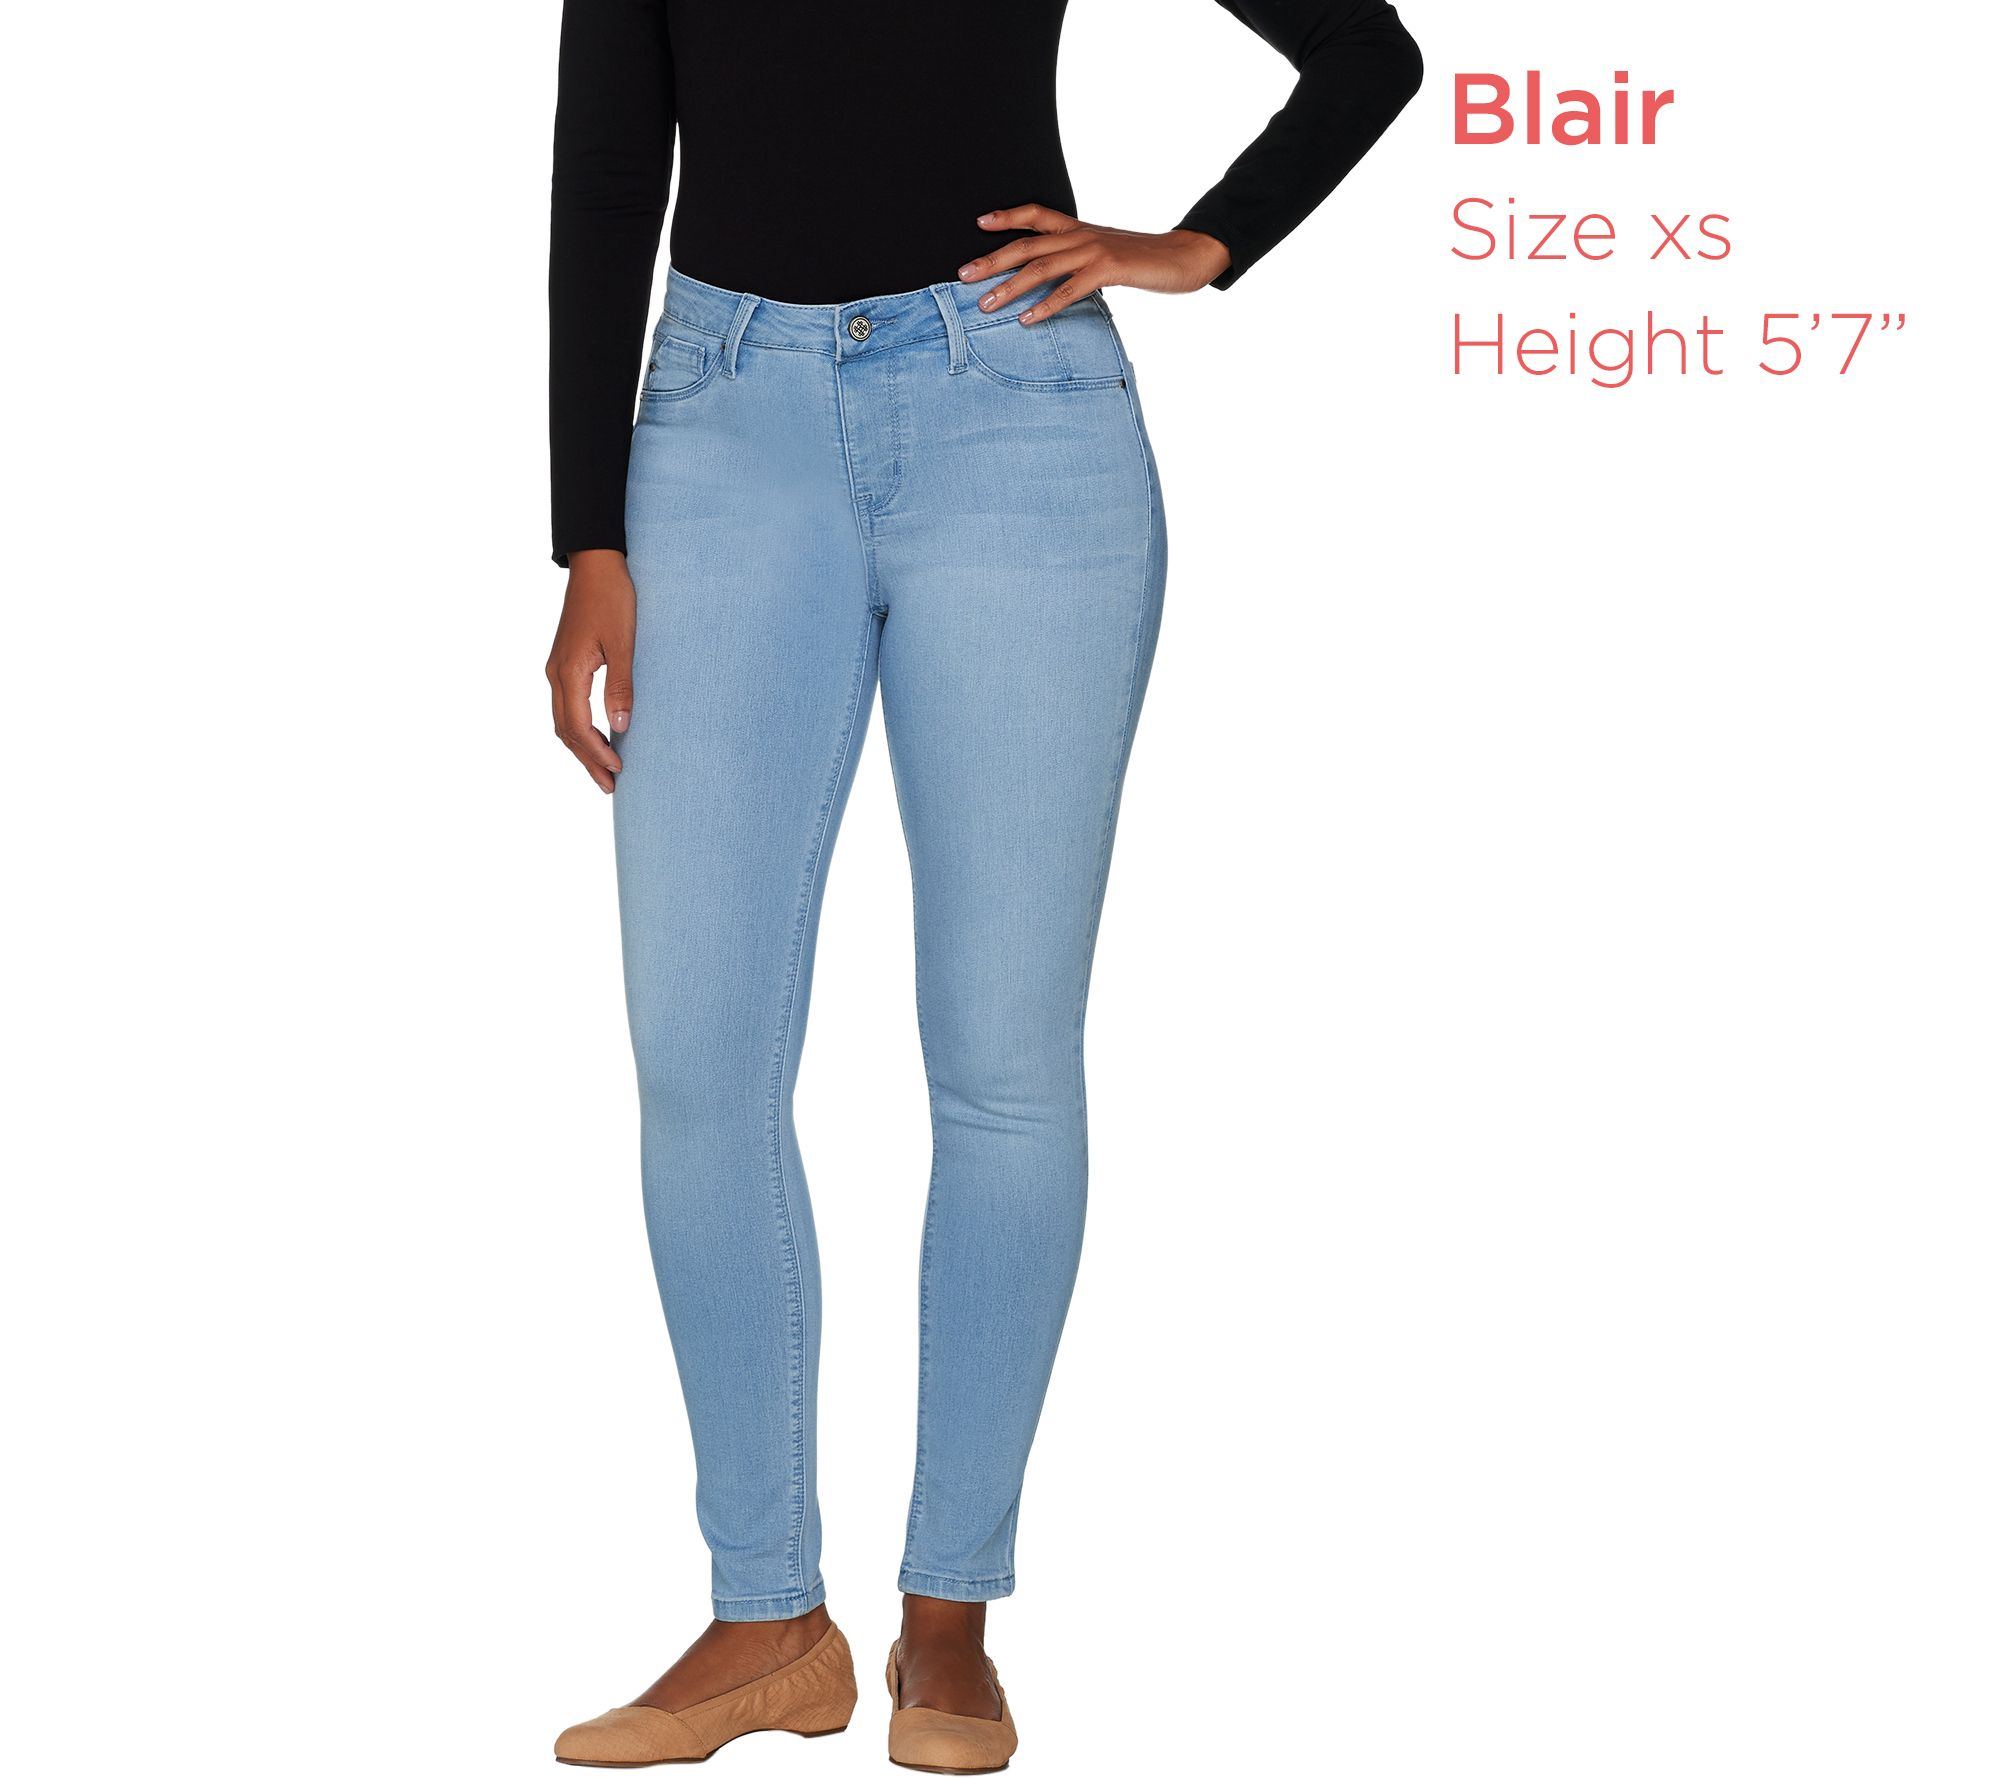 (QVC) Laurie Felt Silky Denim Skinny Ankle Jeans